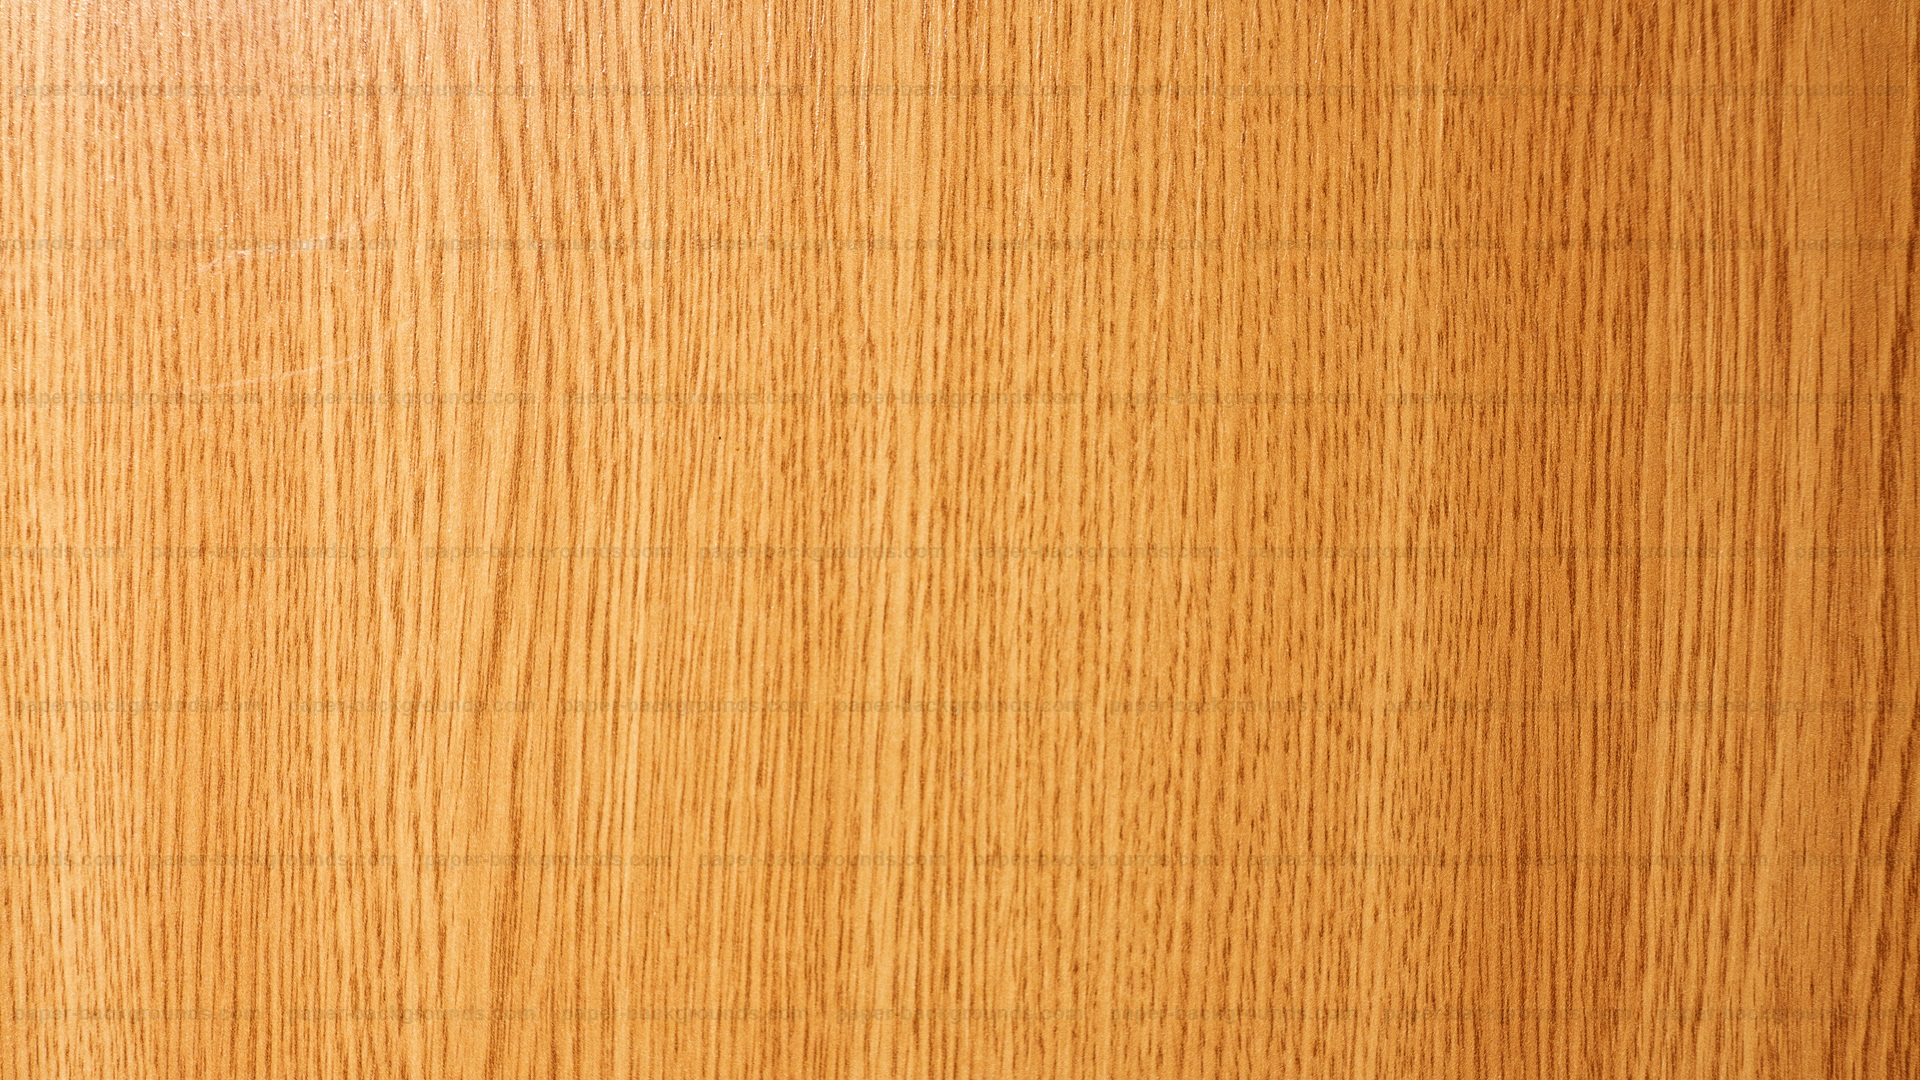 Light Brown Furniture Texture HD